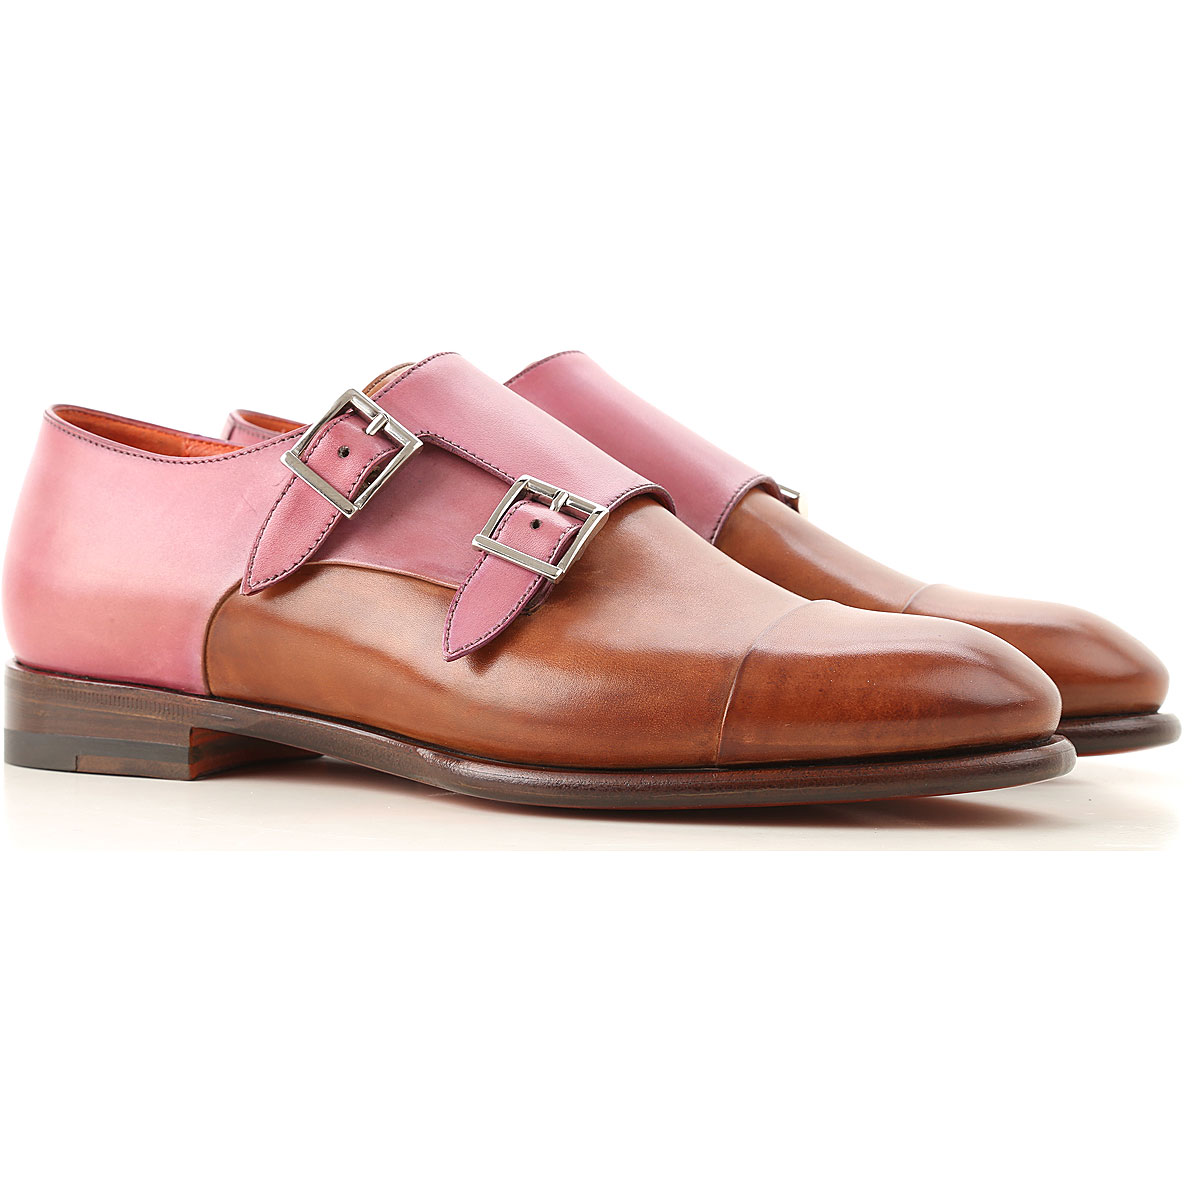 Santoni Oxford Lace up Shoes for Women On Sale in Outlet, Copper Brown, Leather, 2019, 6 7